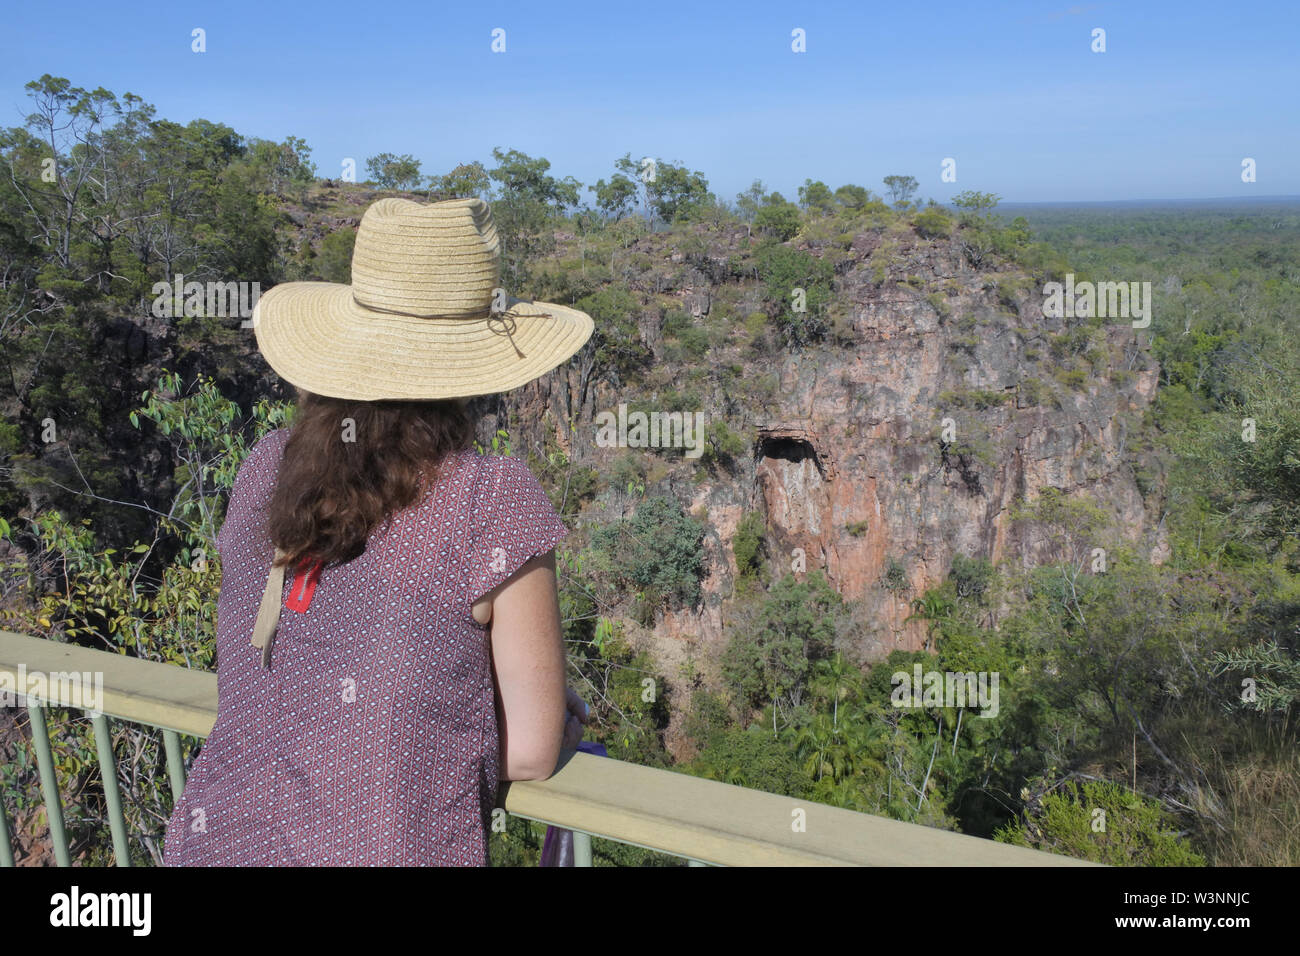 Australian woman tourist looking at the landscape view of Litchfield National Park Northern Territory Australia - Stock Image